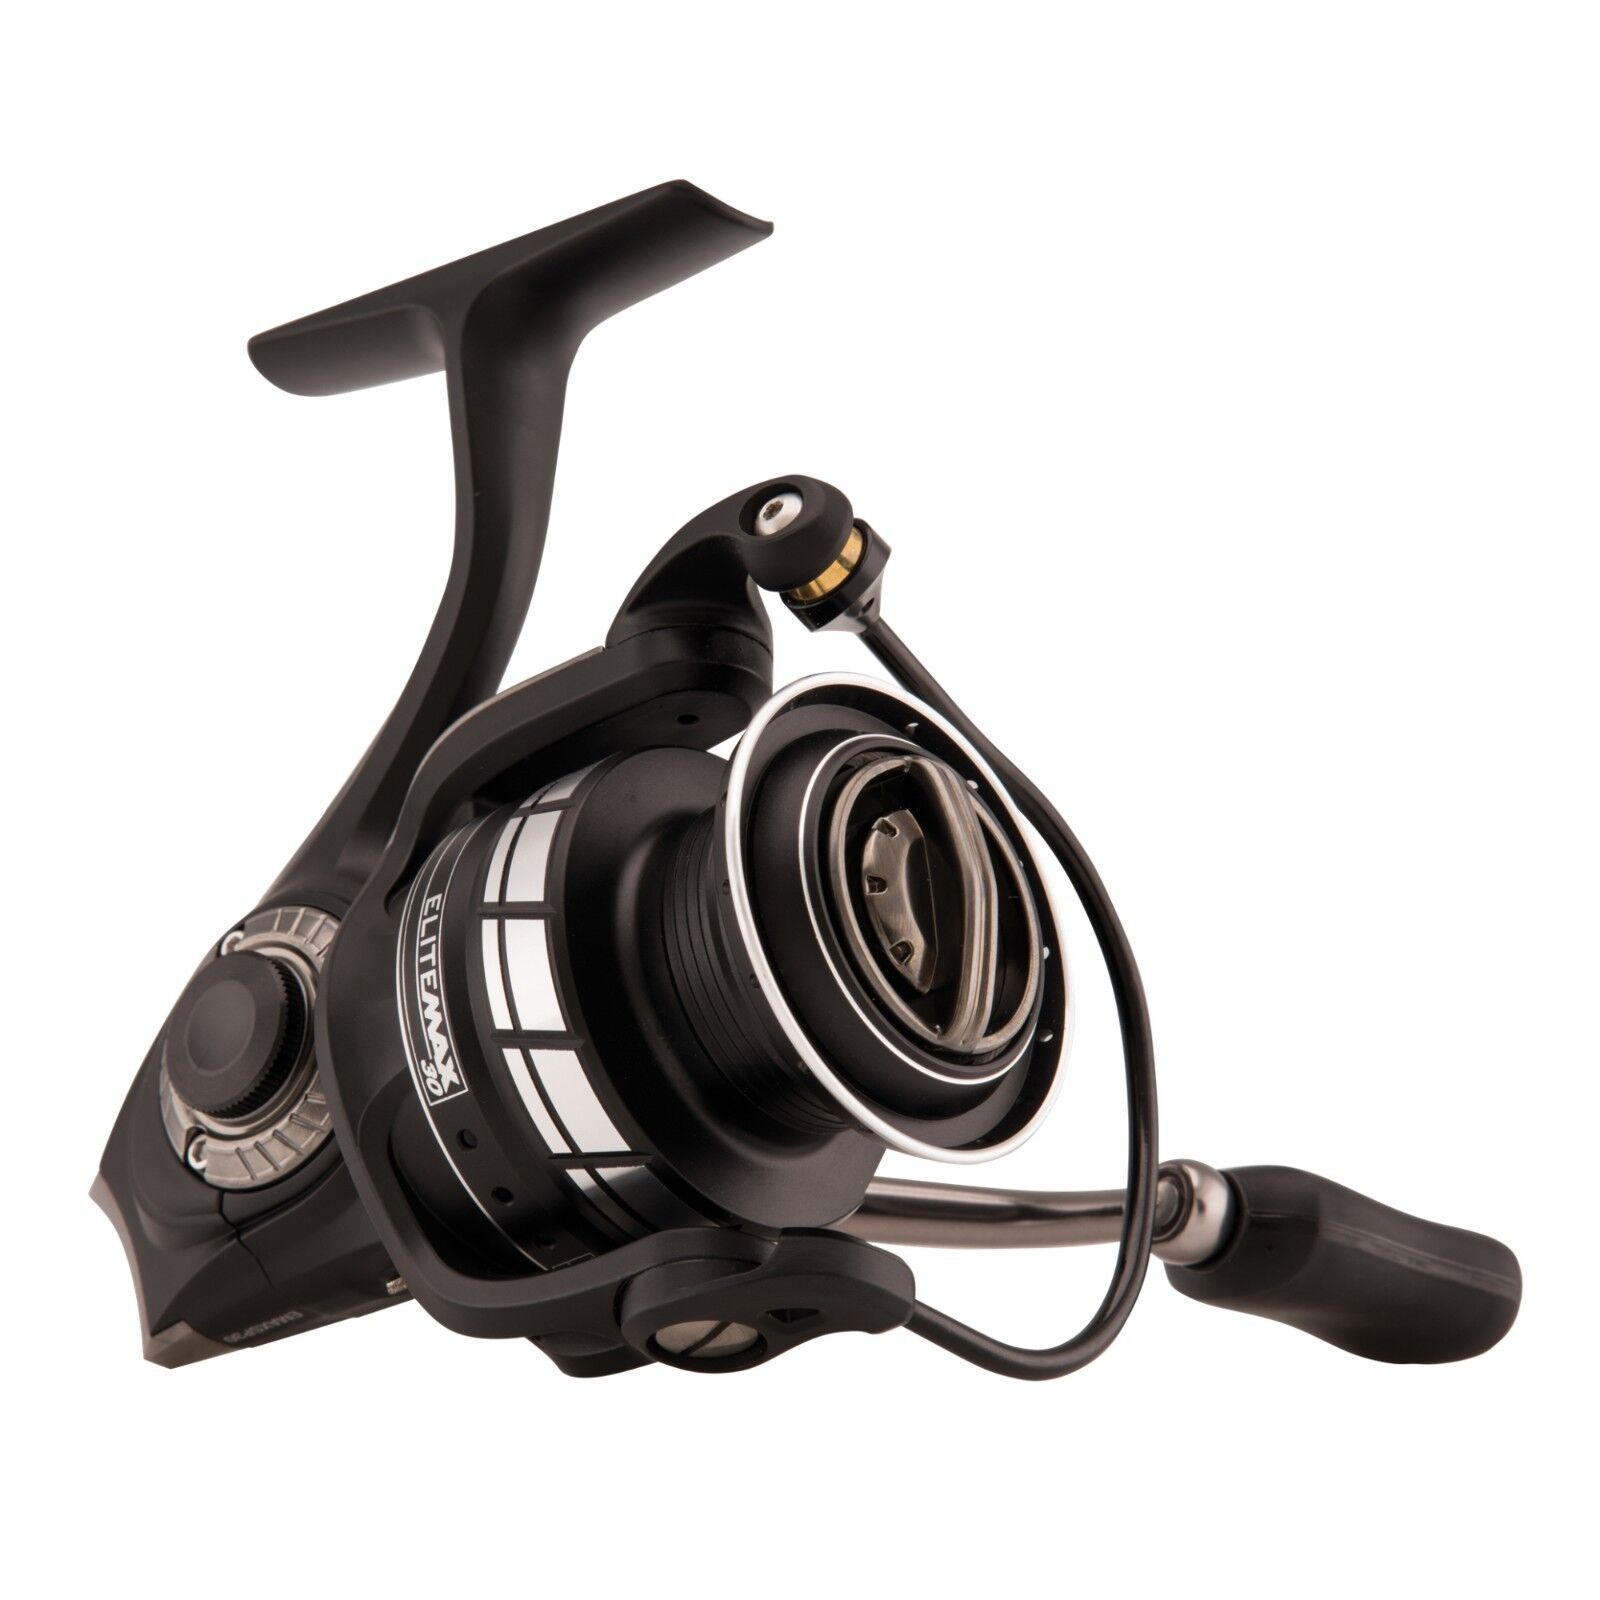 Abu Garcia Elite Max 40 Spinnrolle Spinning Spin Spinnrolle 40 Angelrolle Rolle Frontbremse d23fbd